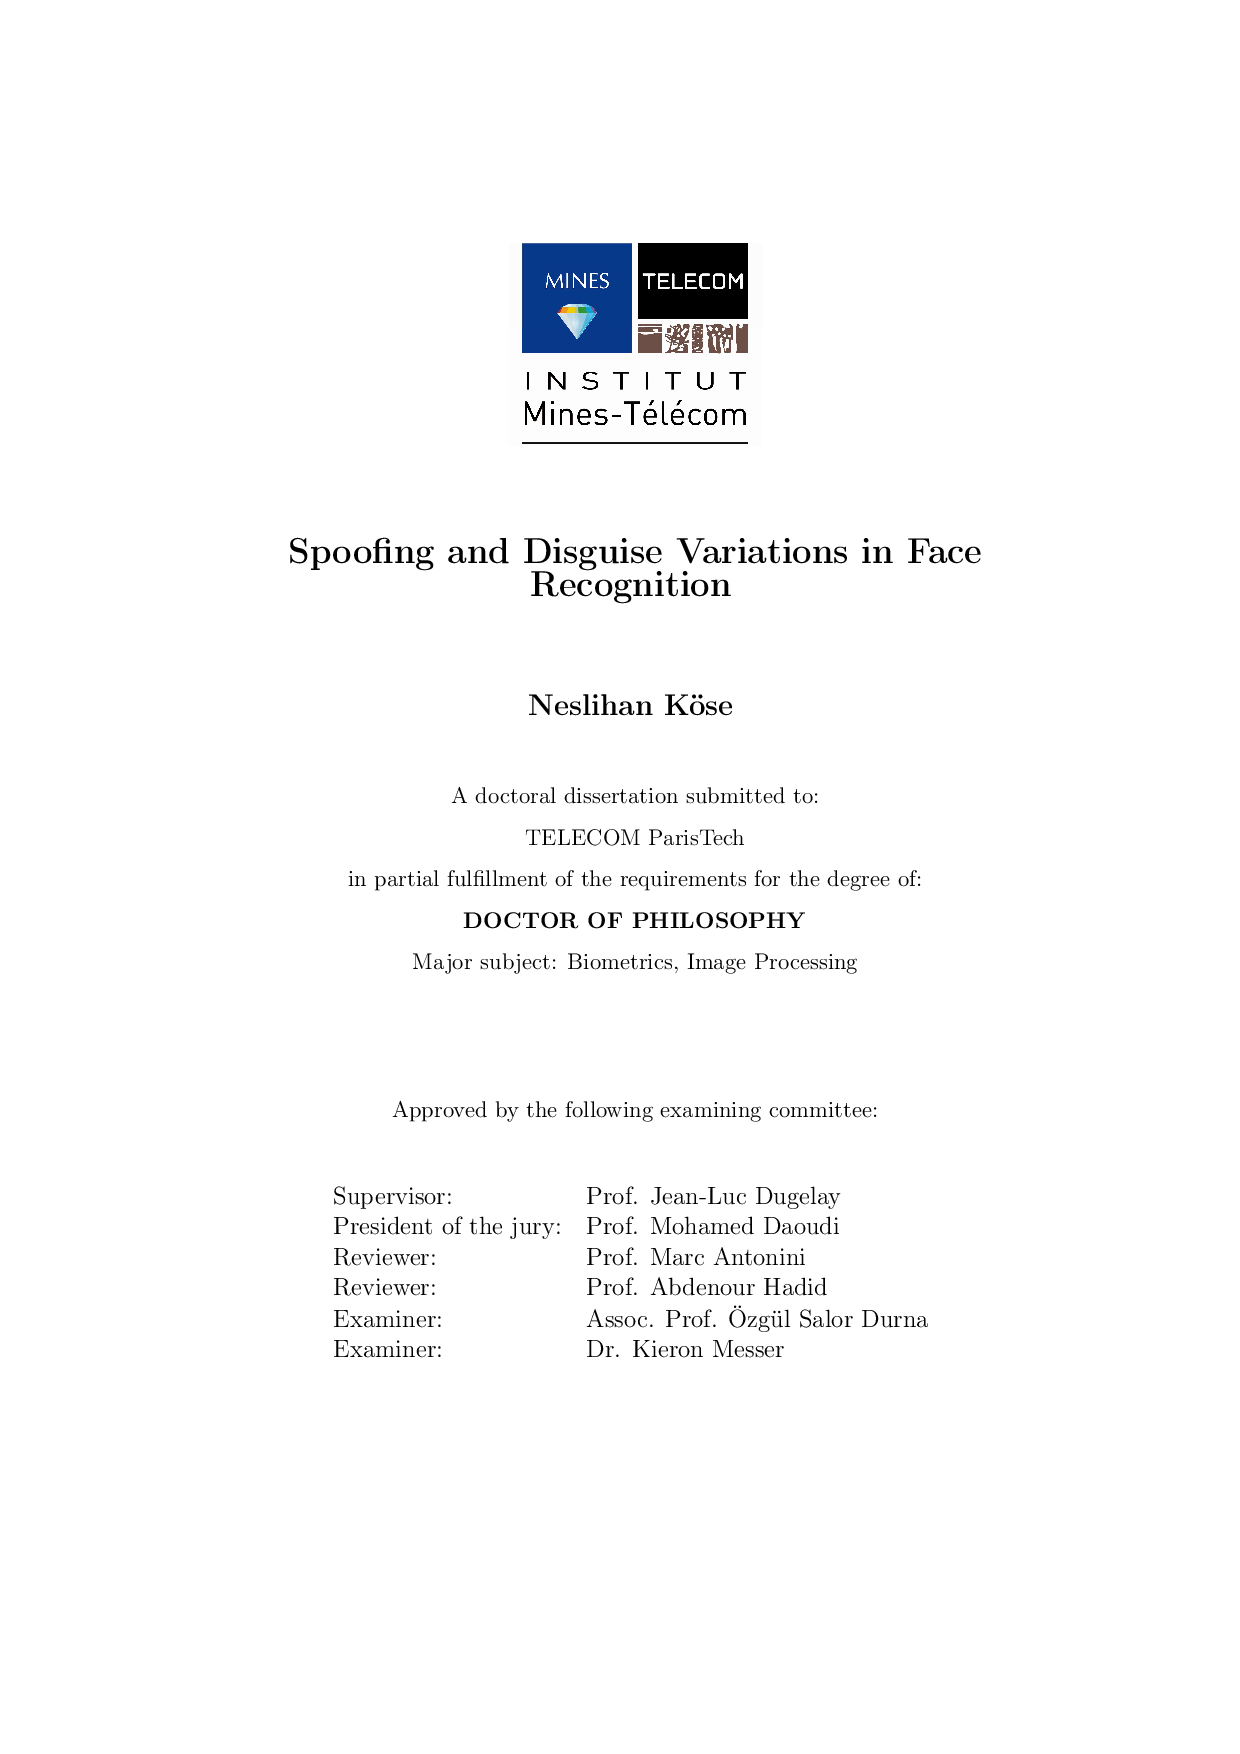 Eurasip phd thesis